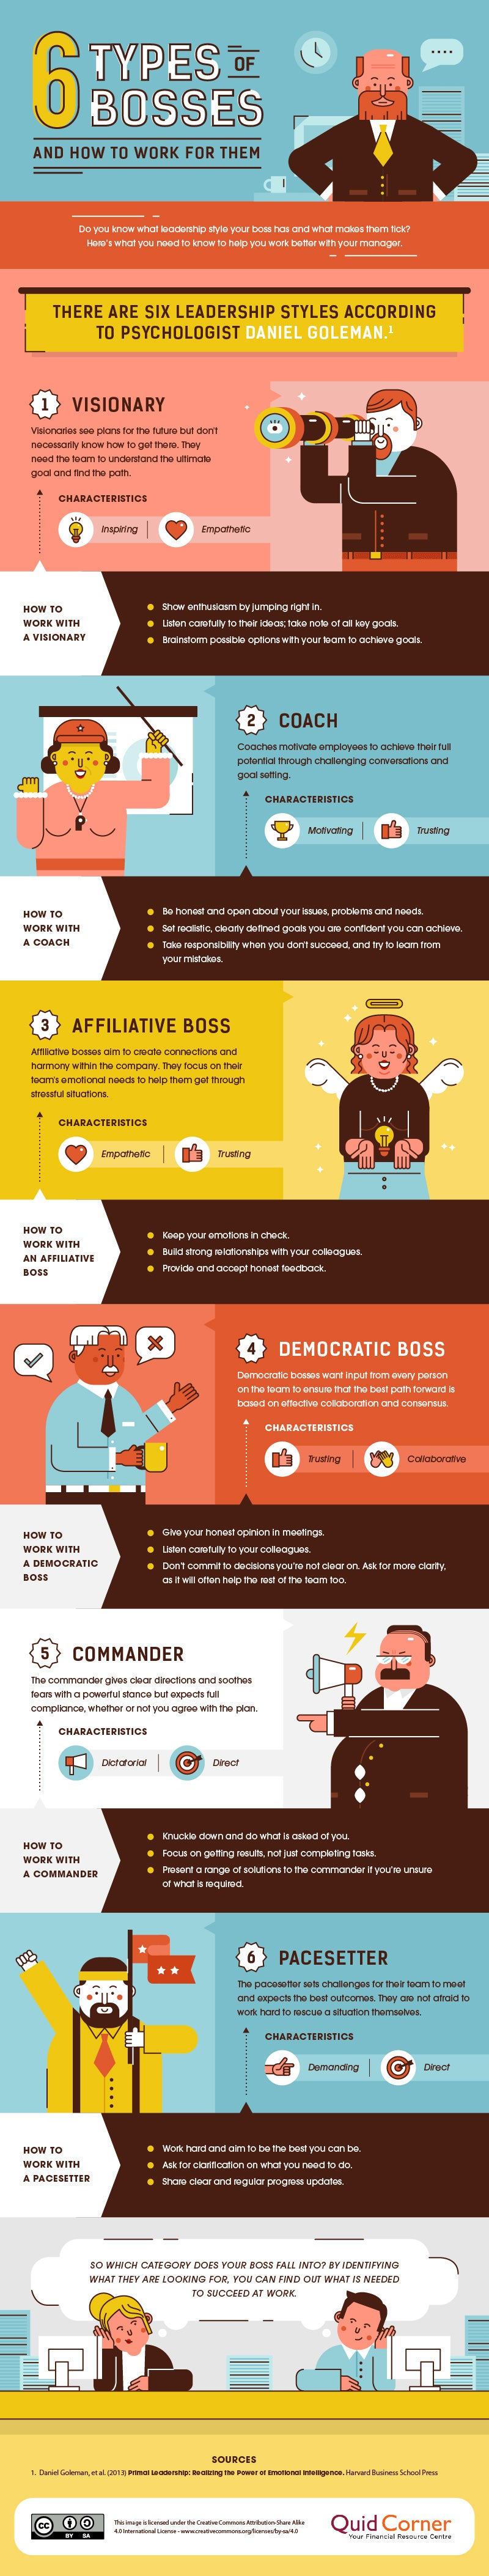 6 types of Boss